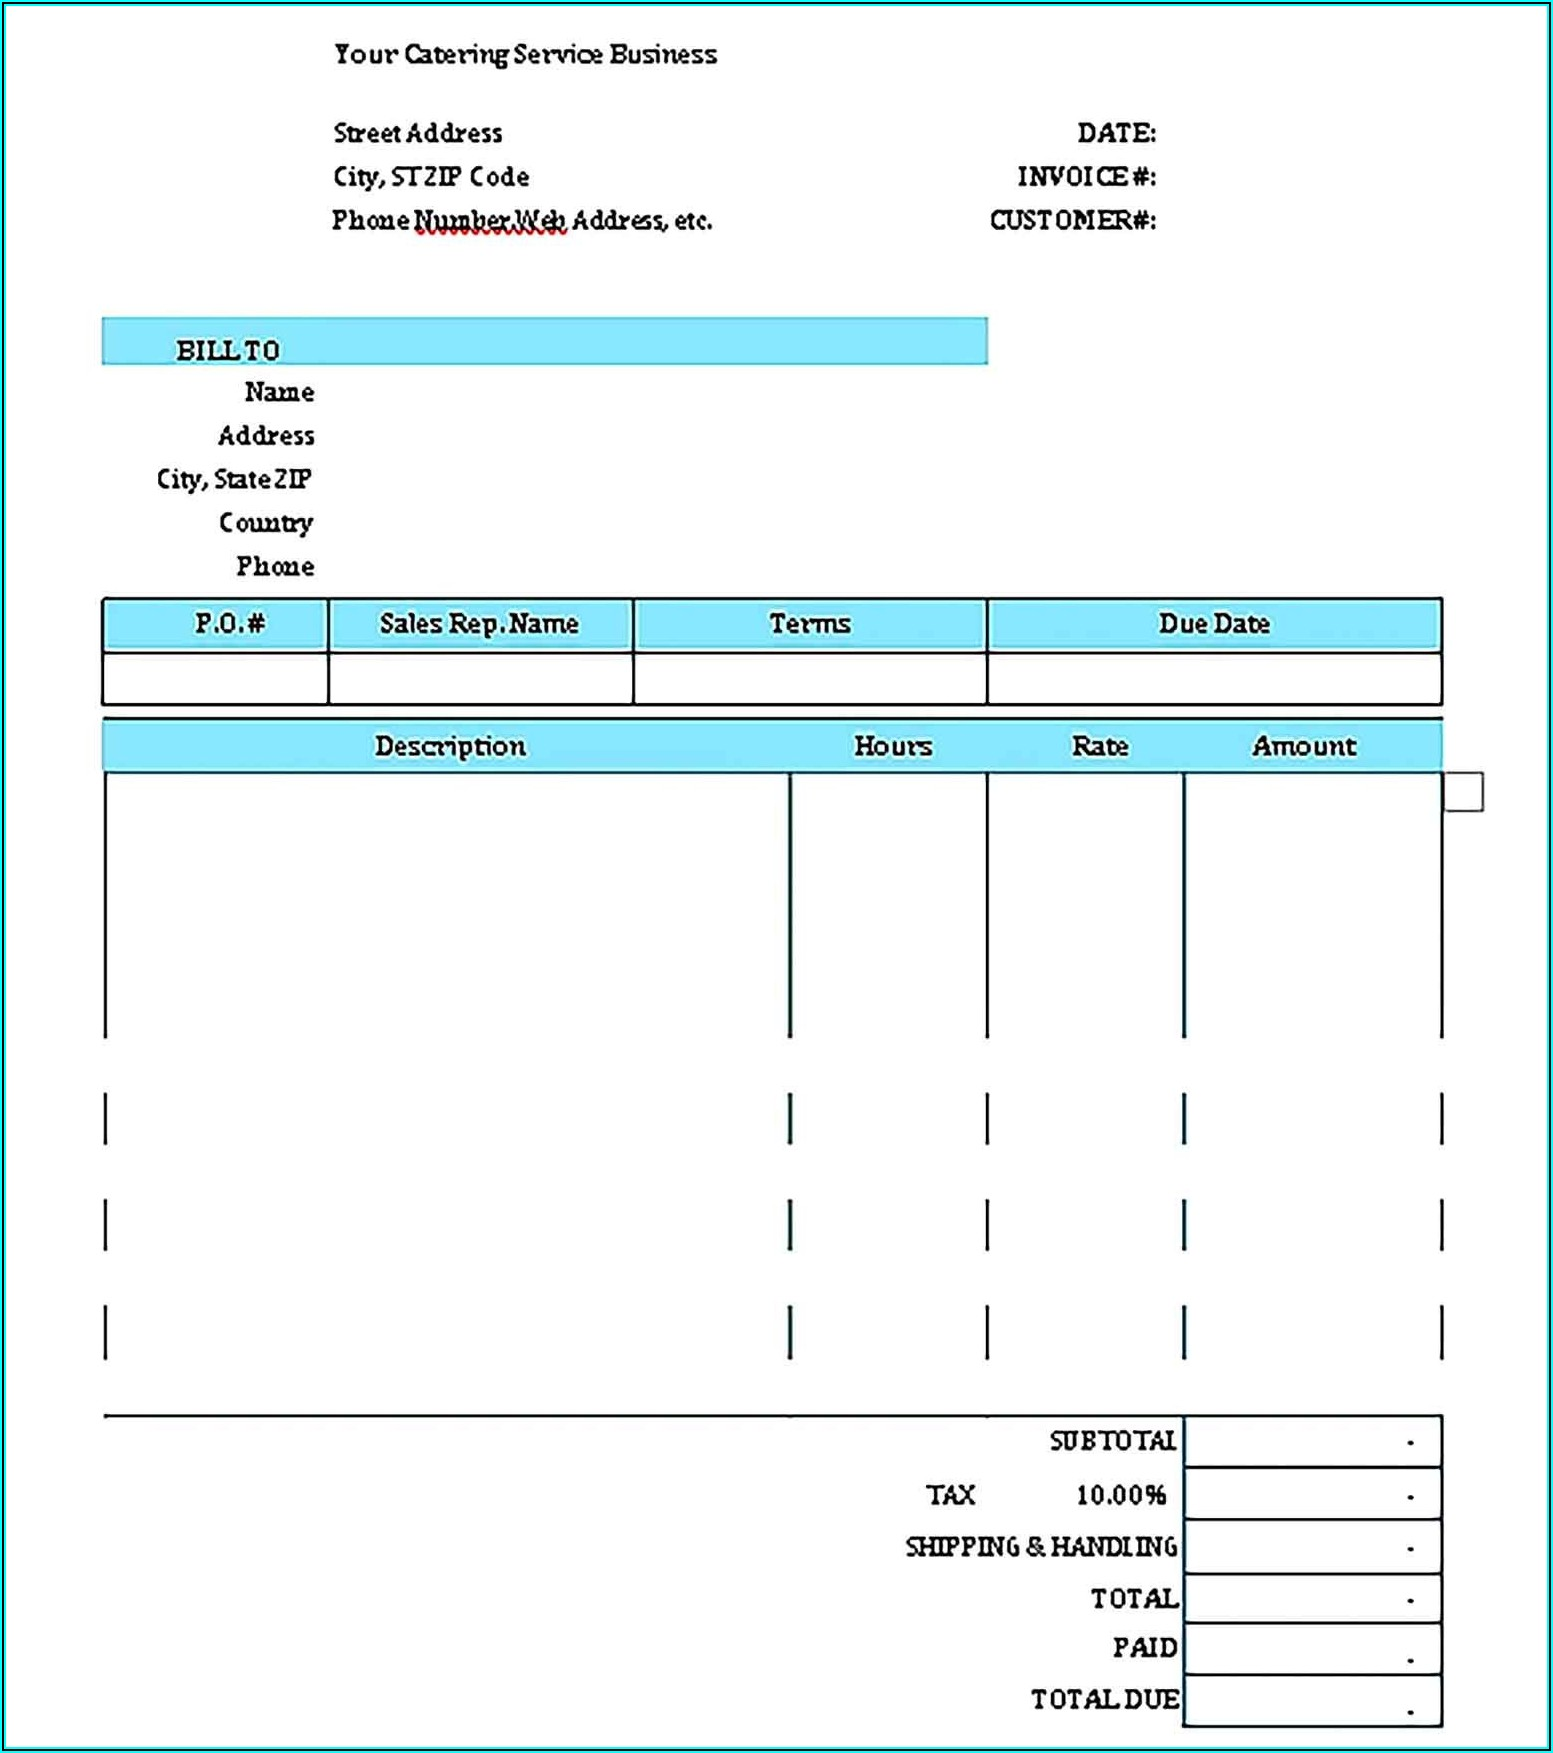 Invoice Template Catering